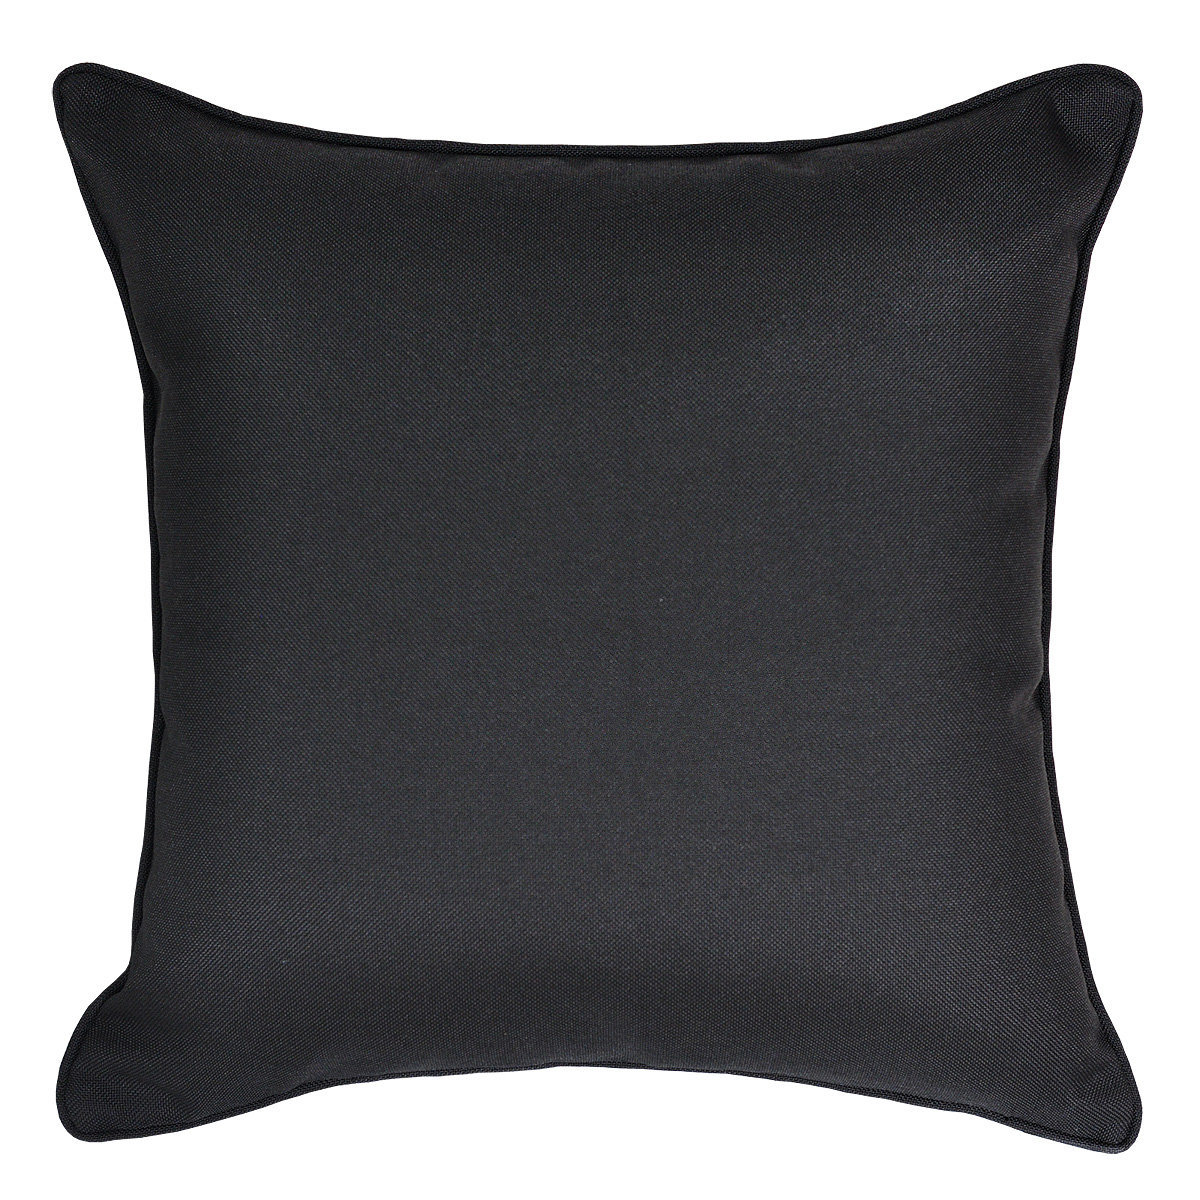 Kona Ash Outdoor Cushion with Piping - 45x45cm